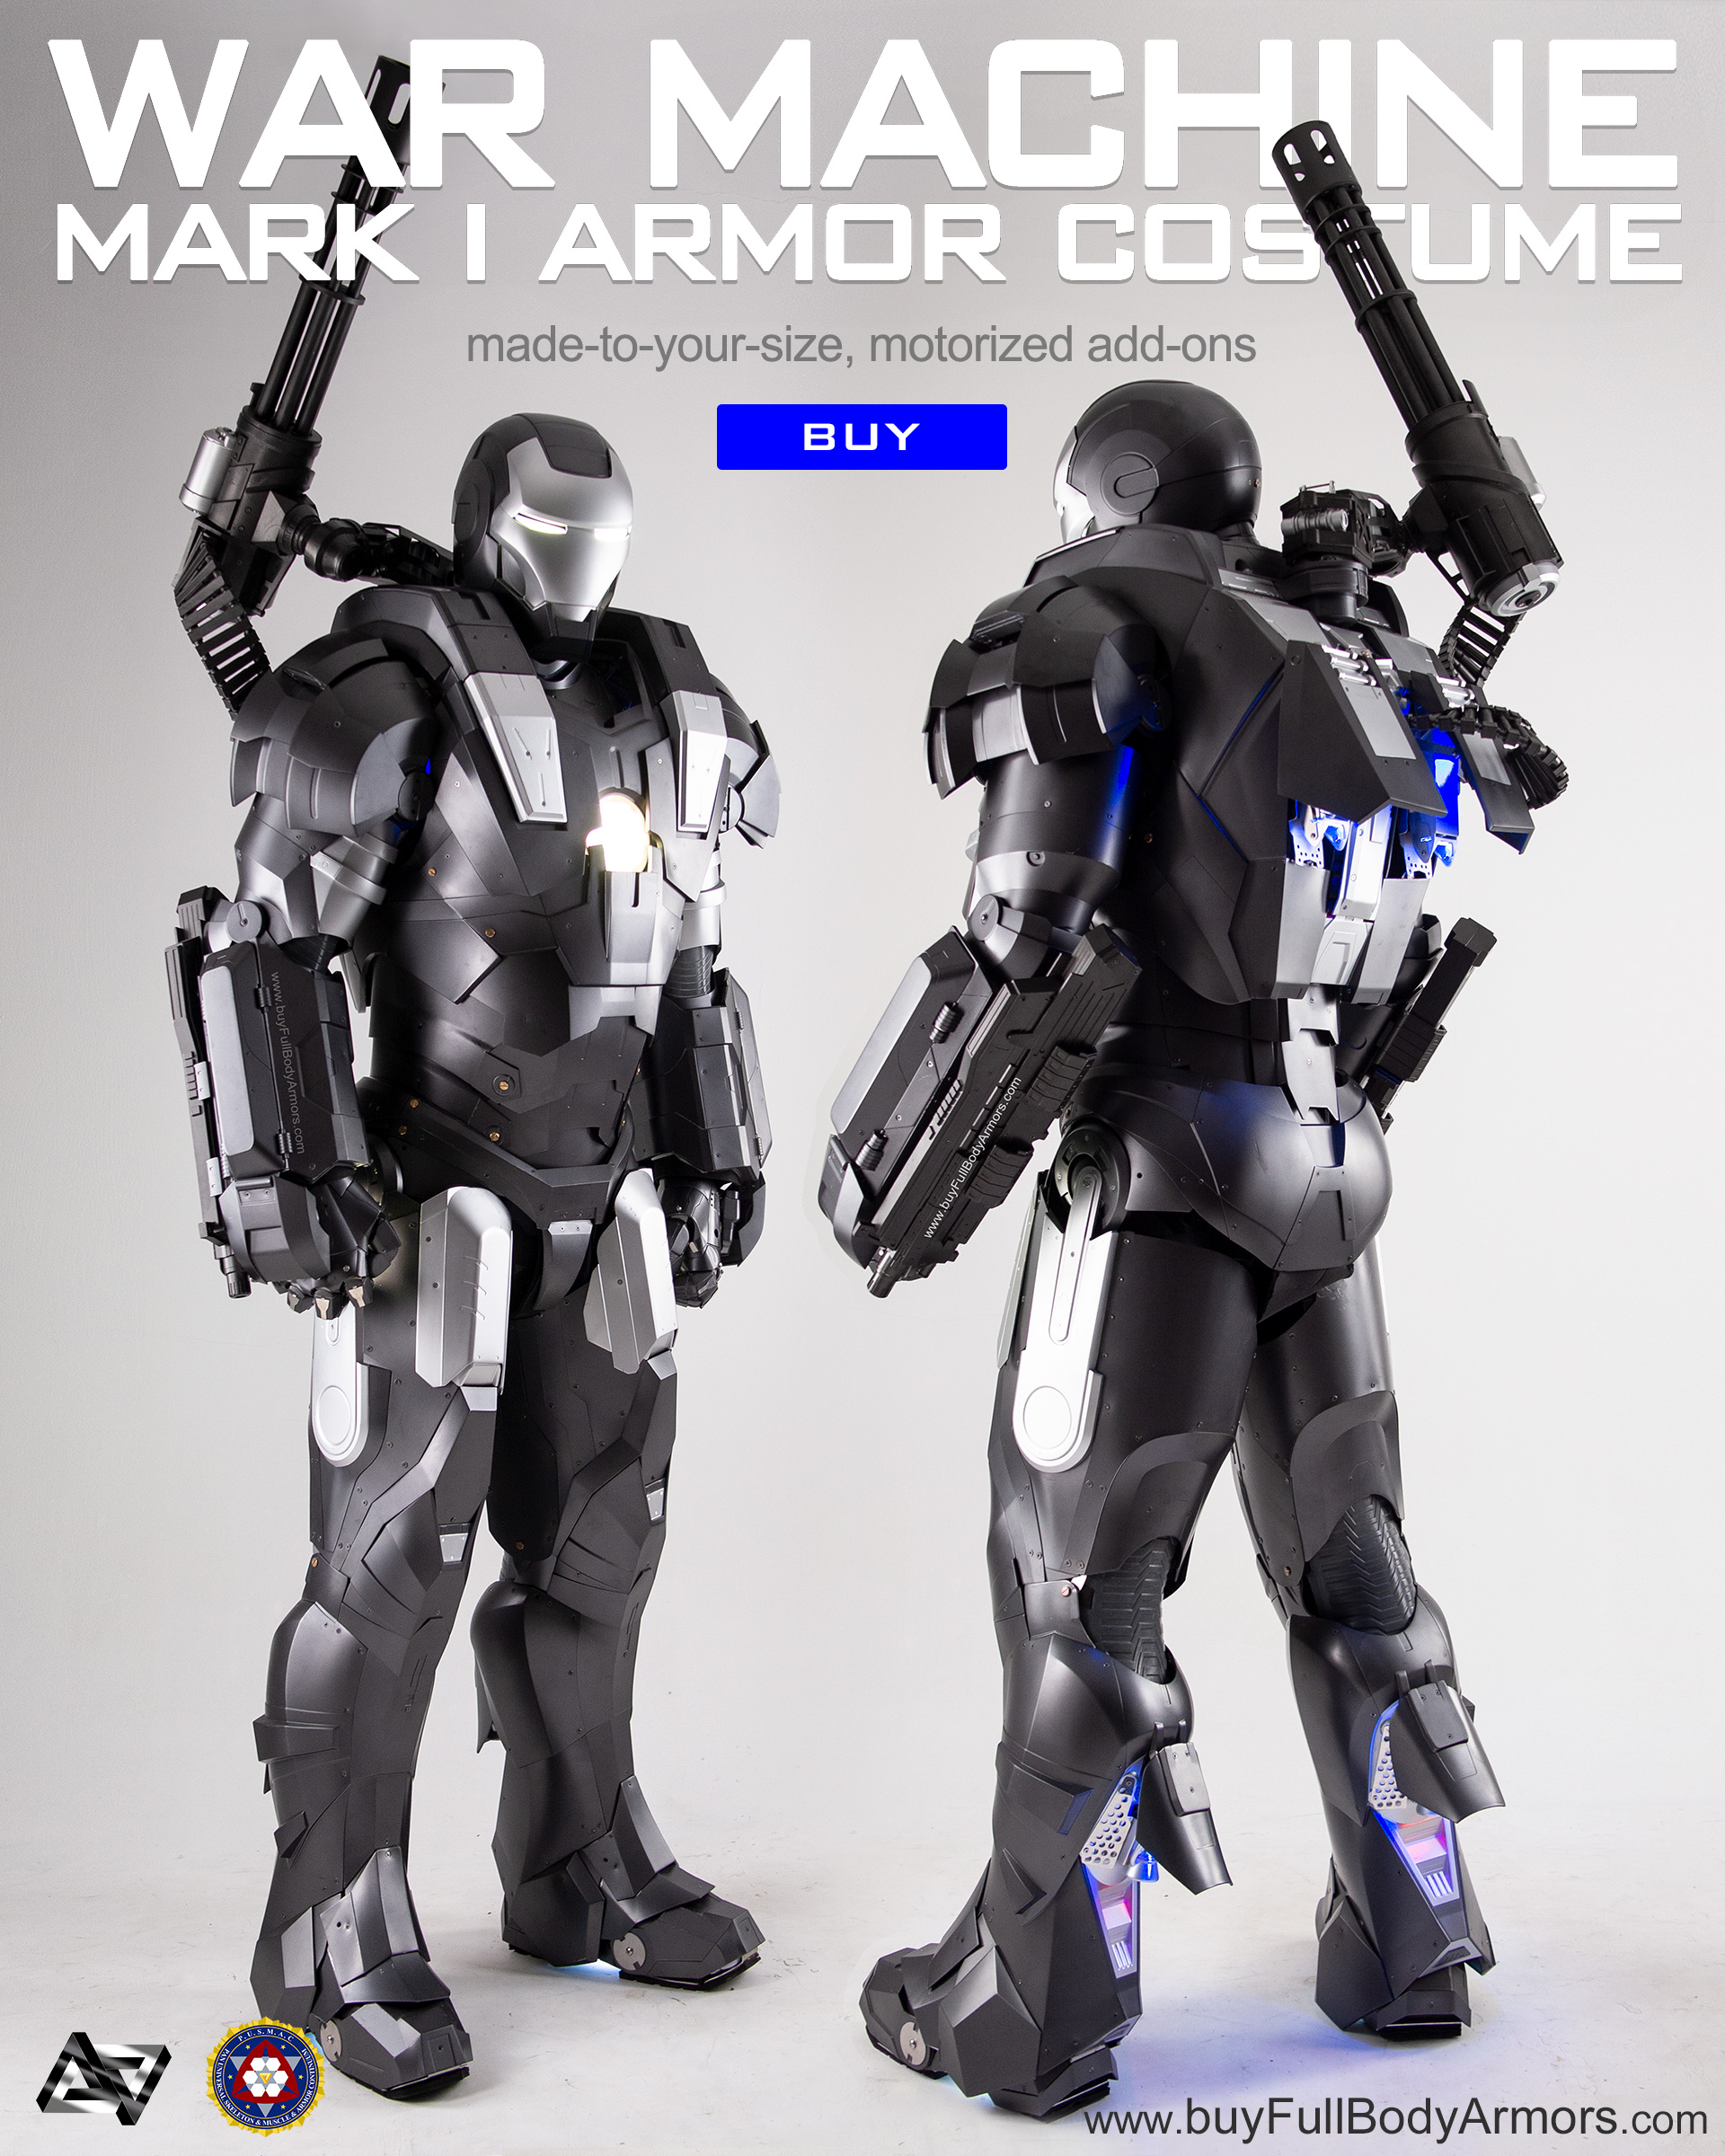 buy the new War Machine Armor Costume